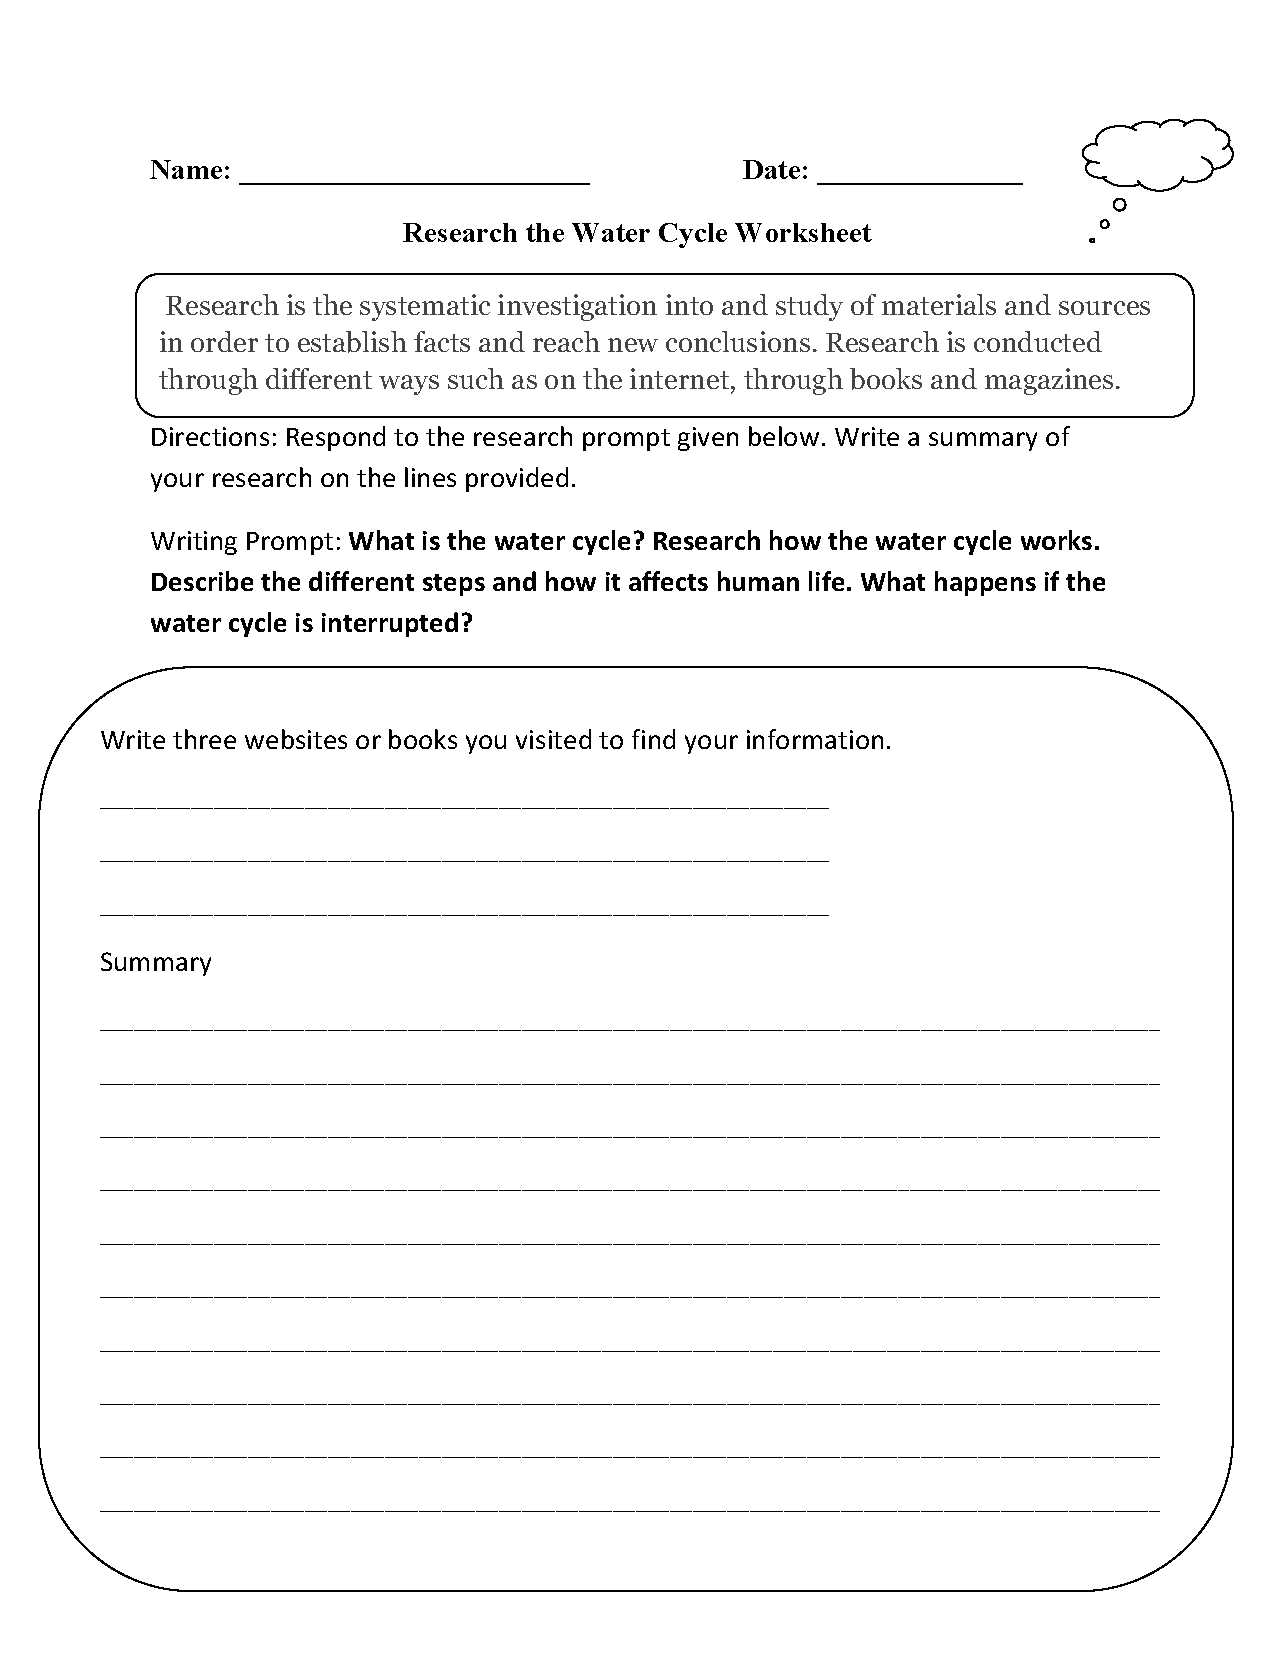 Worksheets Water Cycle Worksheet research worksheets the water cycle worksheet worksheet